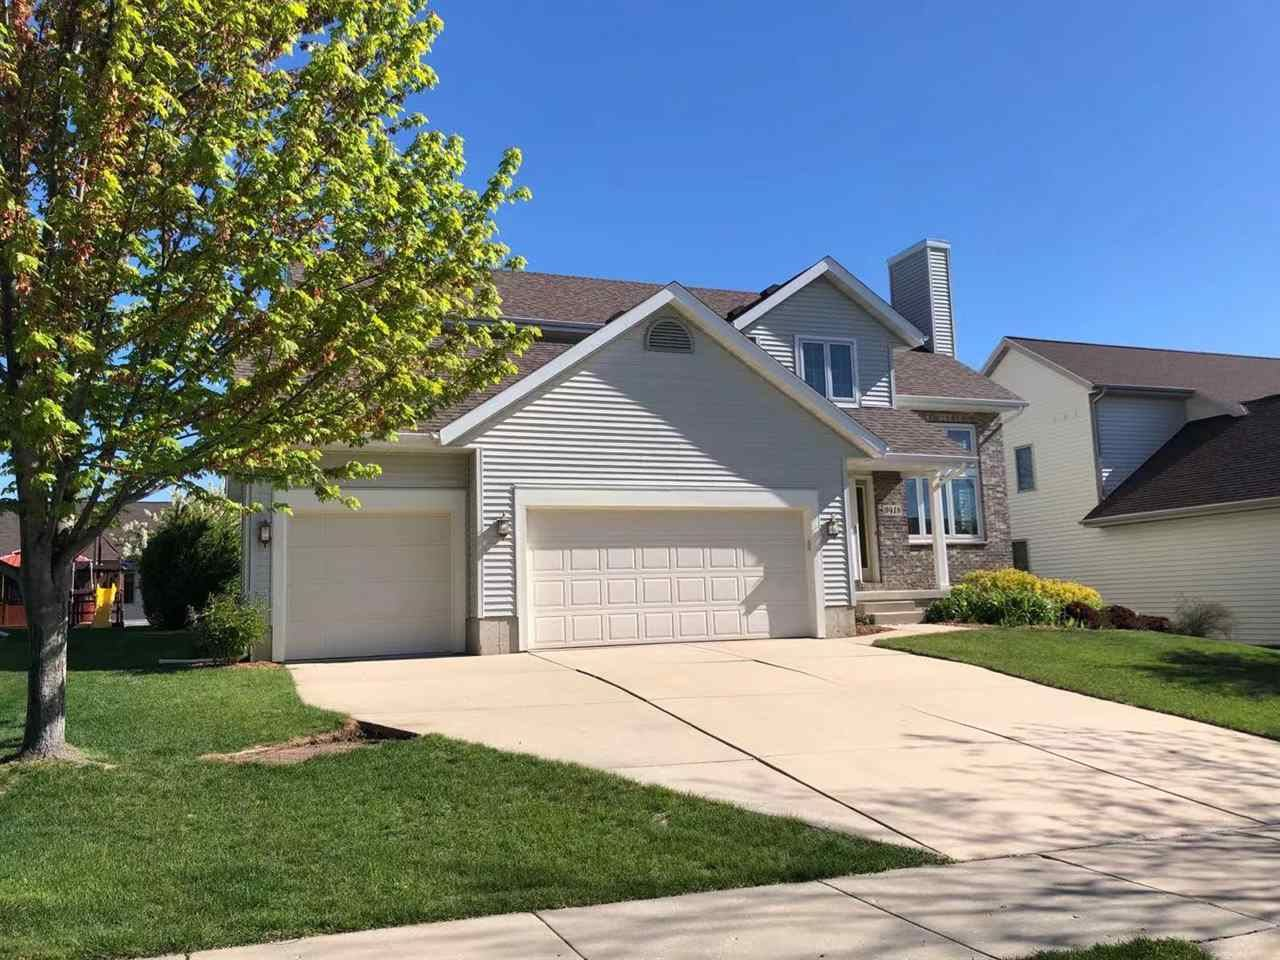 9418 Whippoorwill Way, Middleton, WI 53562 - MLS#: 1908301